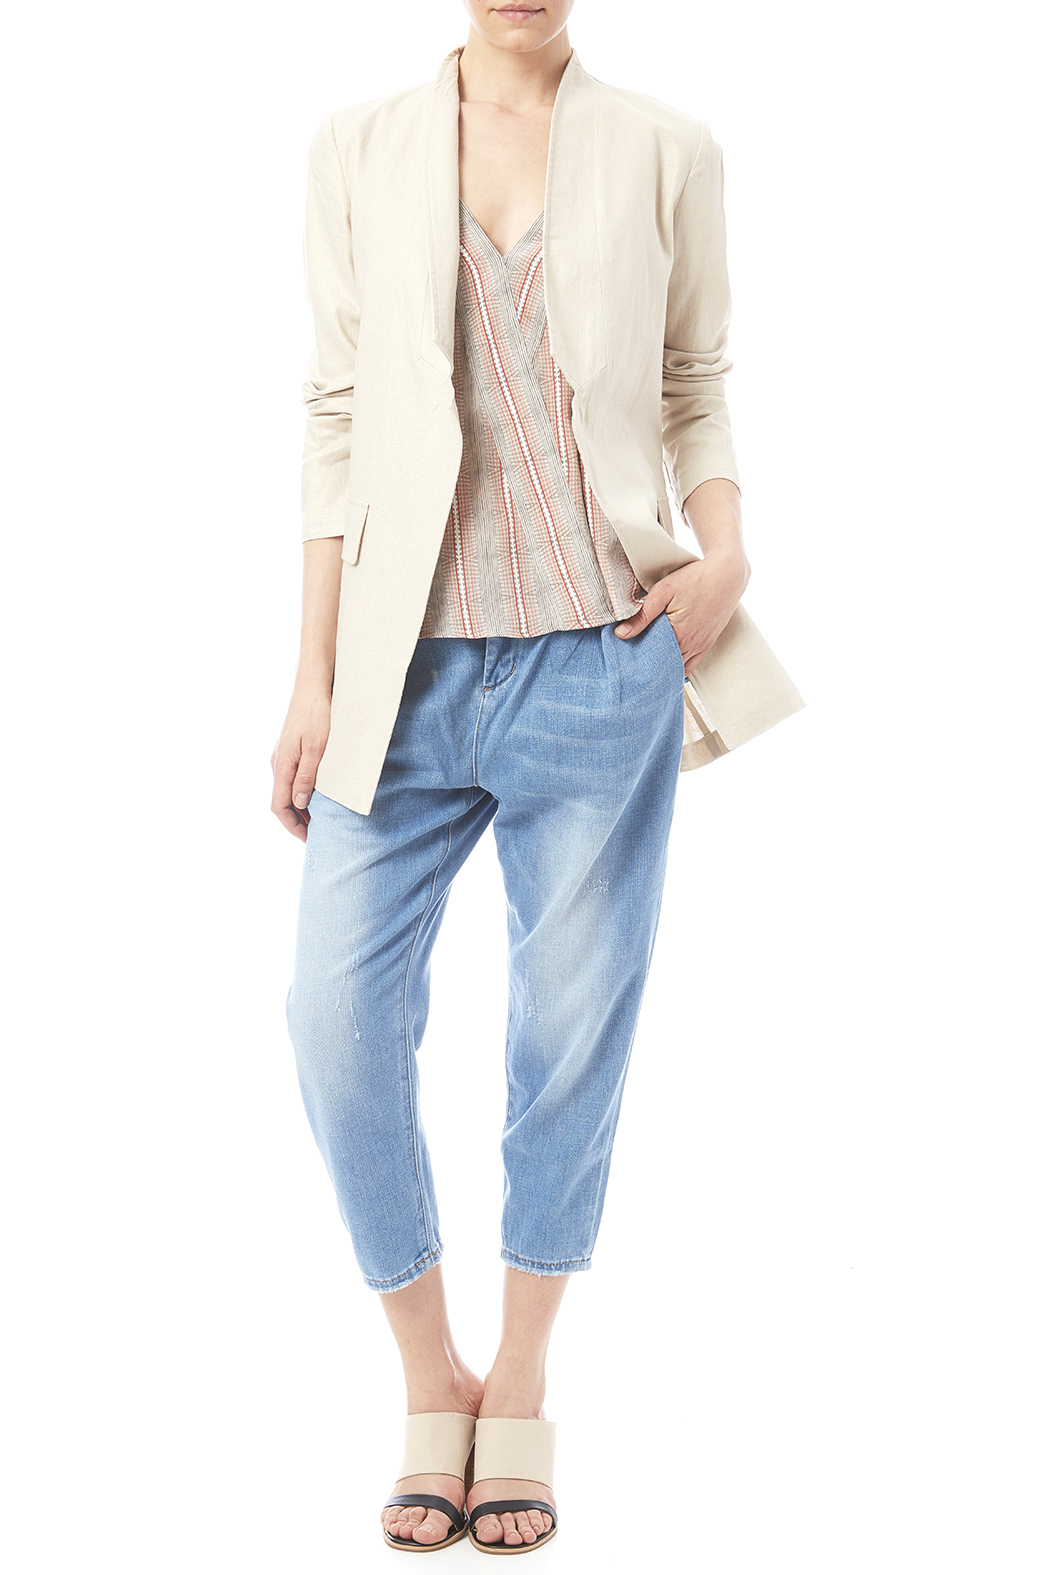 Katherine Barclay Metallic Linen Jacket - Front Full Image